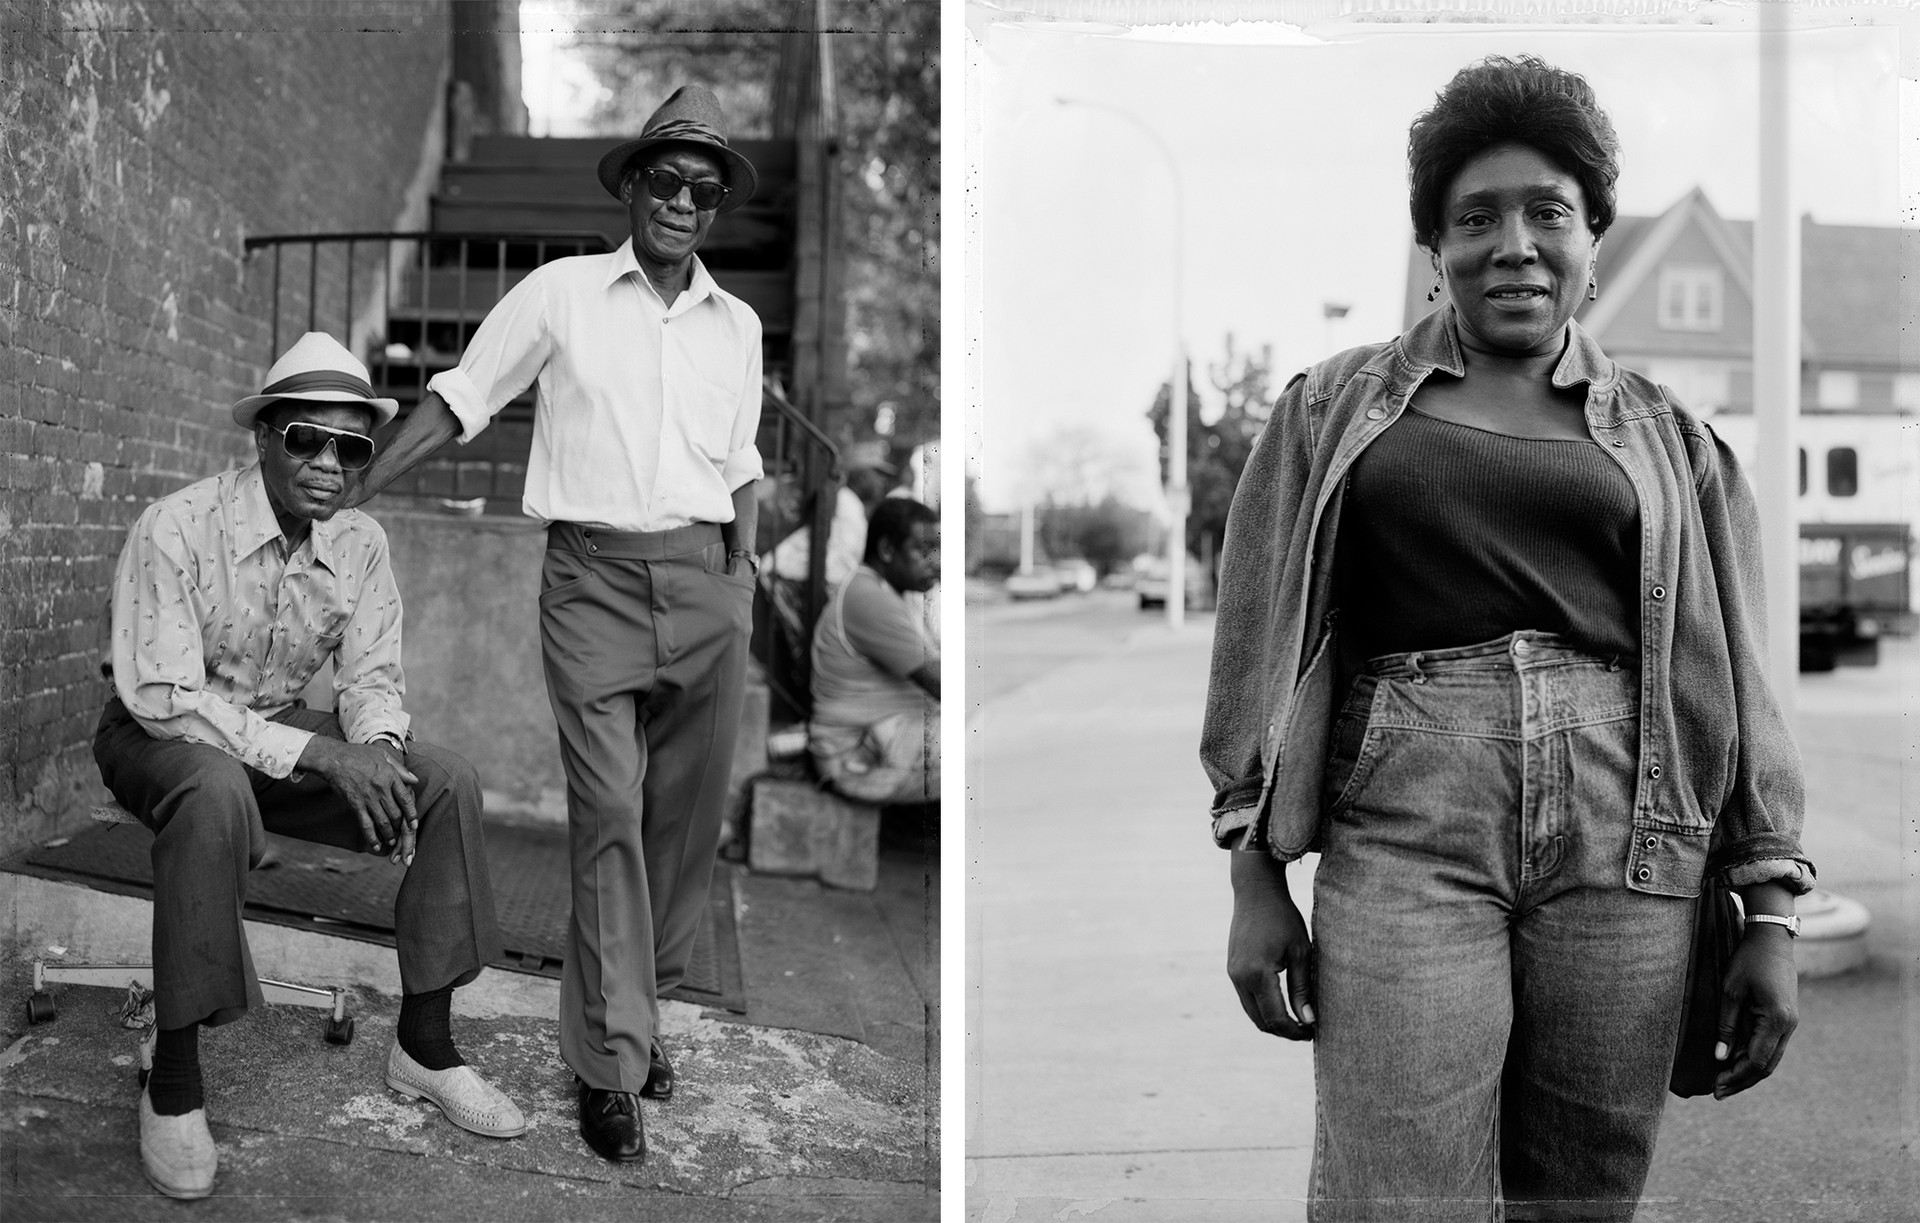 left: photo of two men wearing sunglasses and hats; right: photo of woman wearing denim